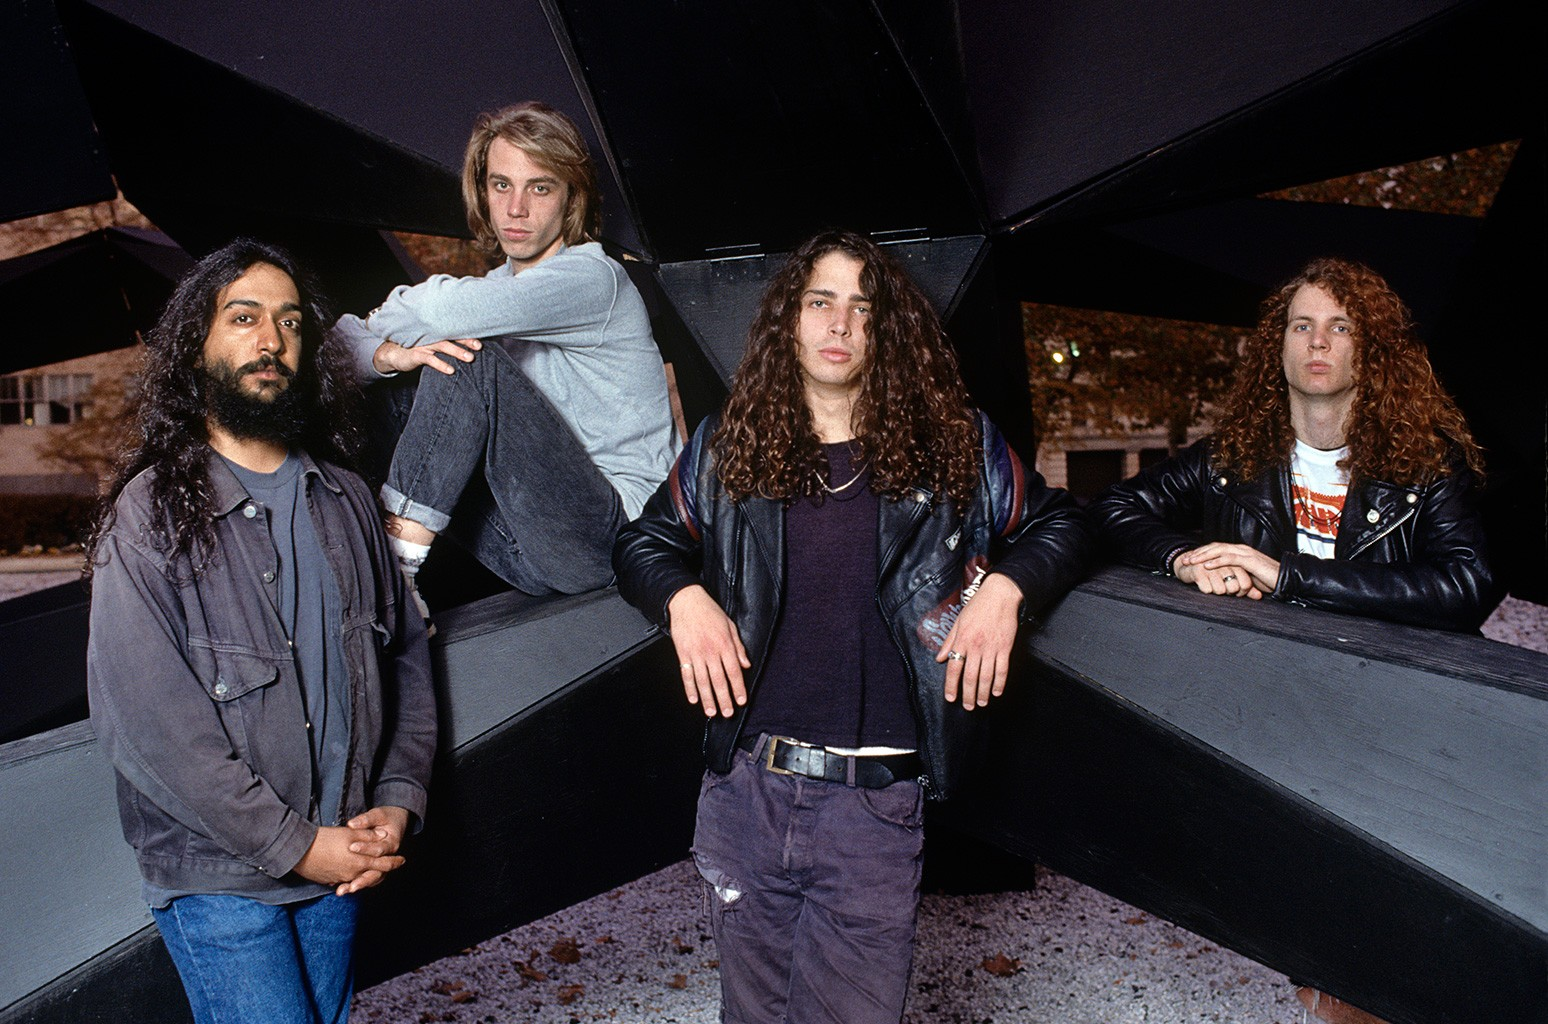 Soundgarden photographed in New York City in 1989.